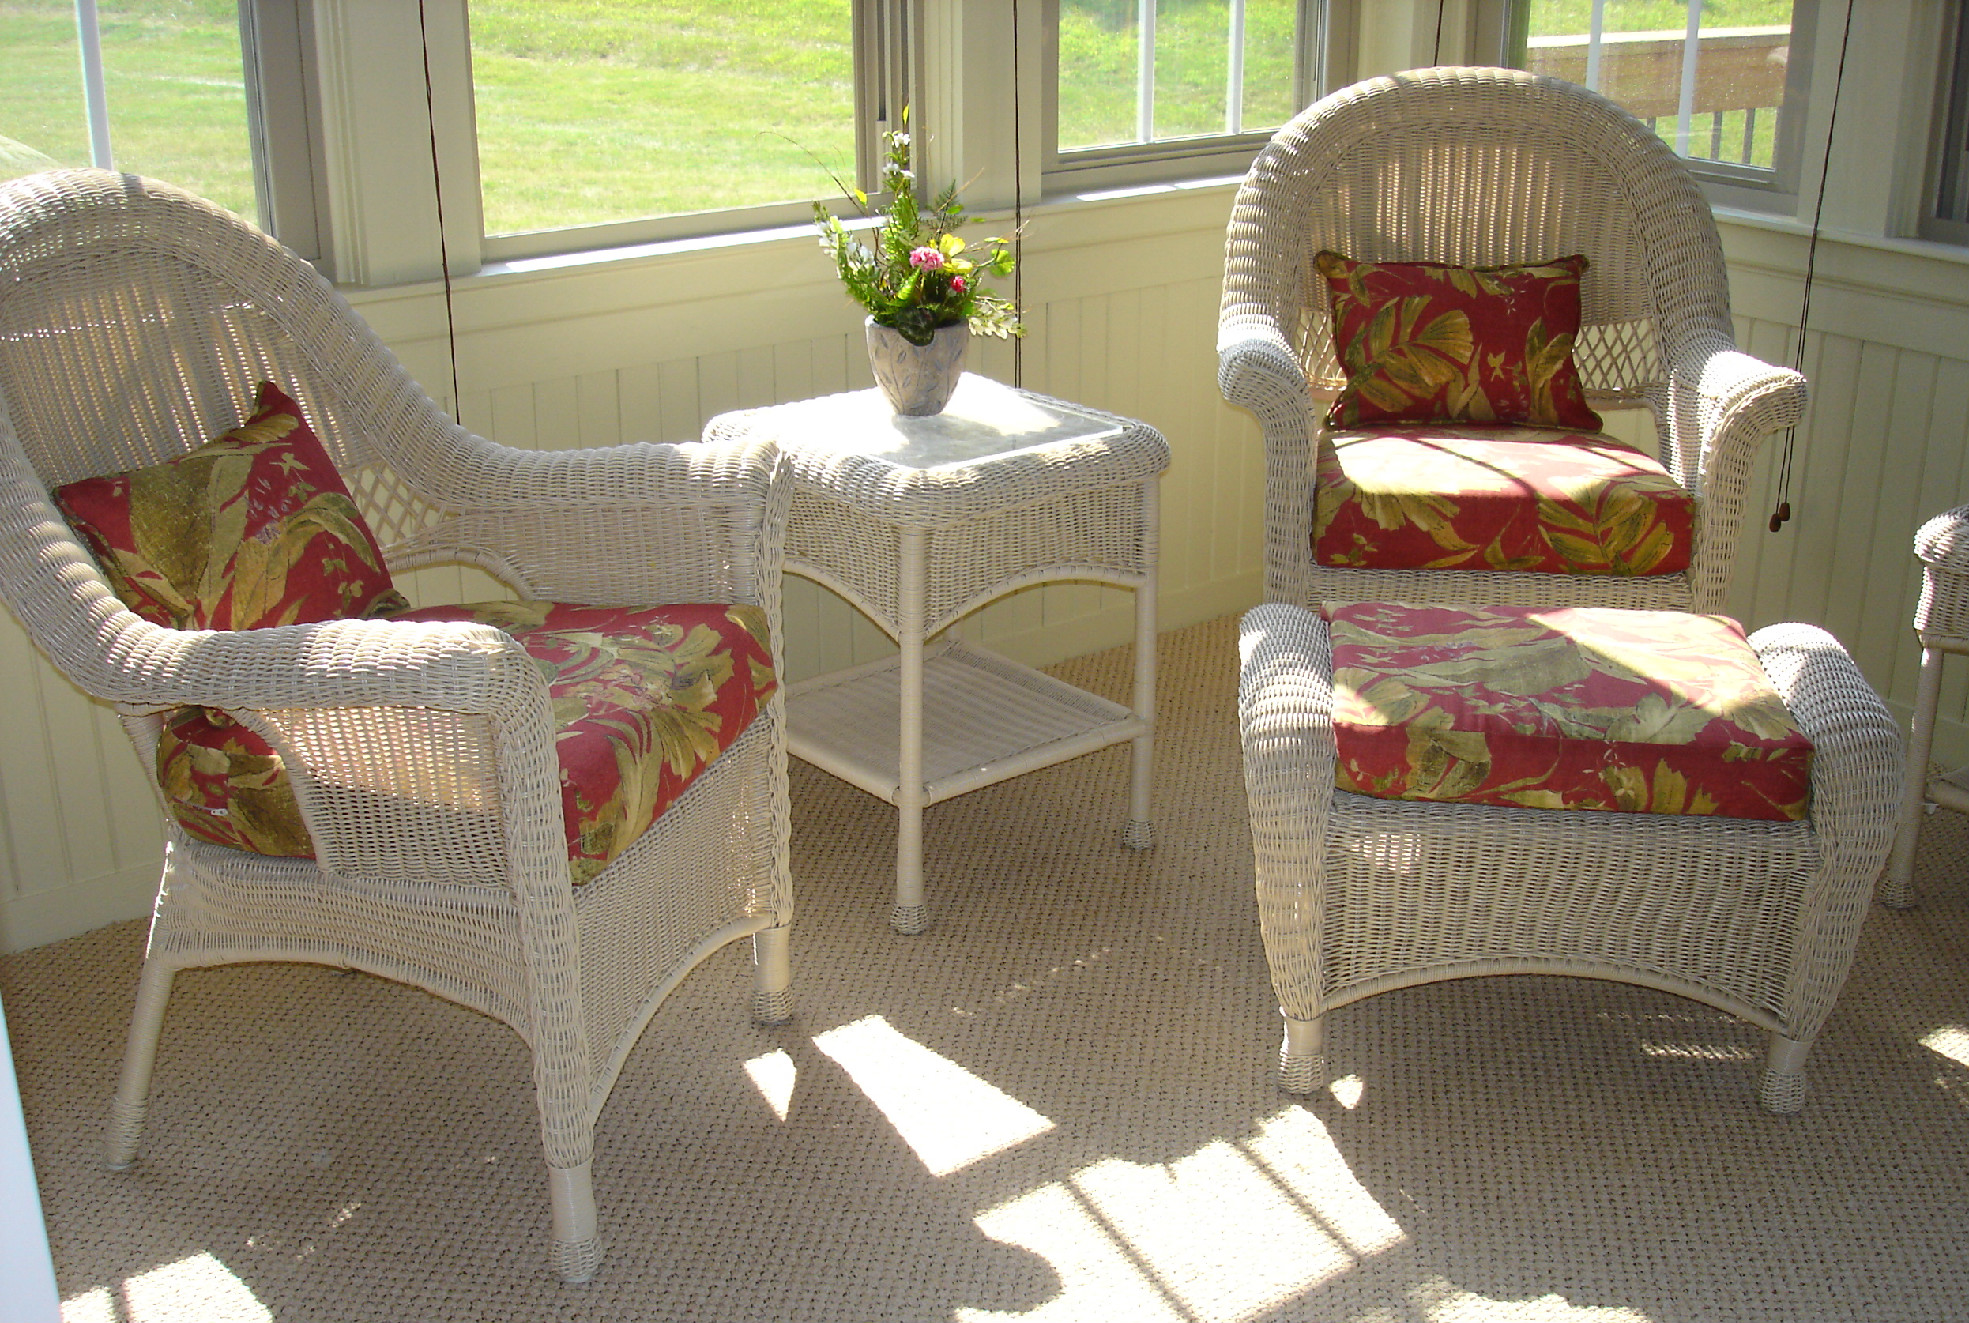 Update your wicker furniture      Susan s Designs wicker love seat cushions wicker chair cushions